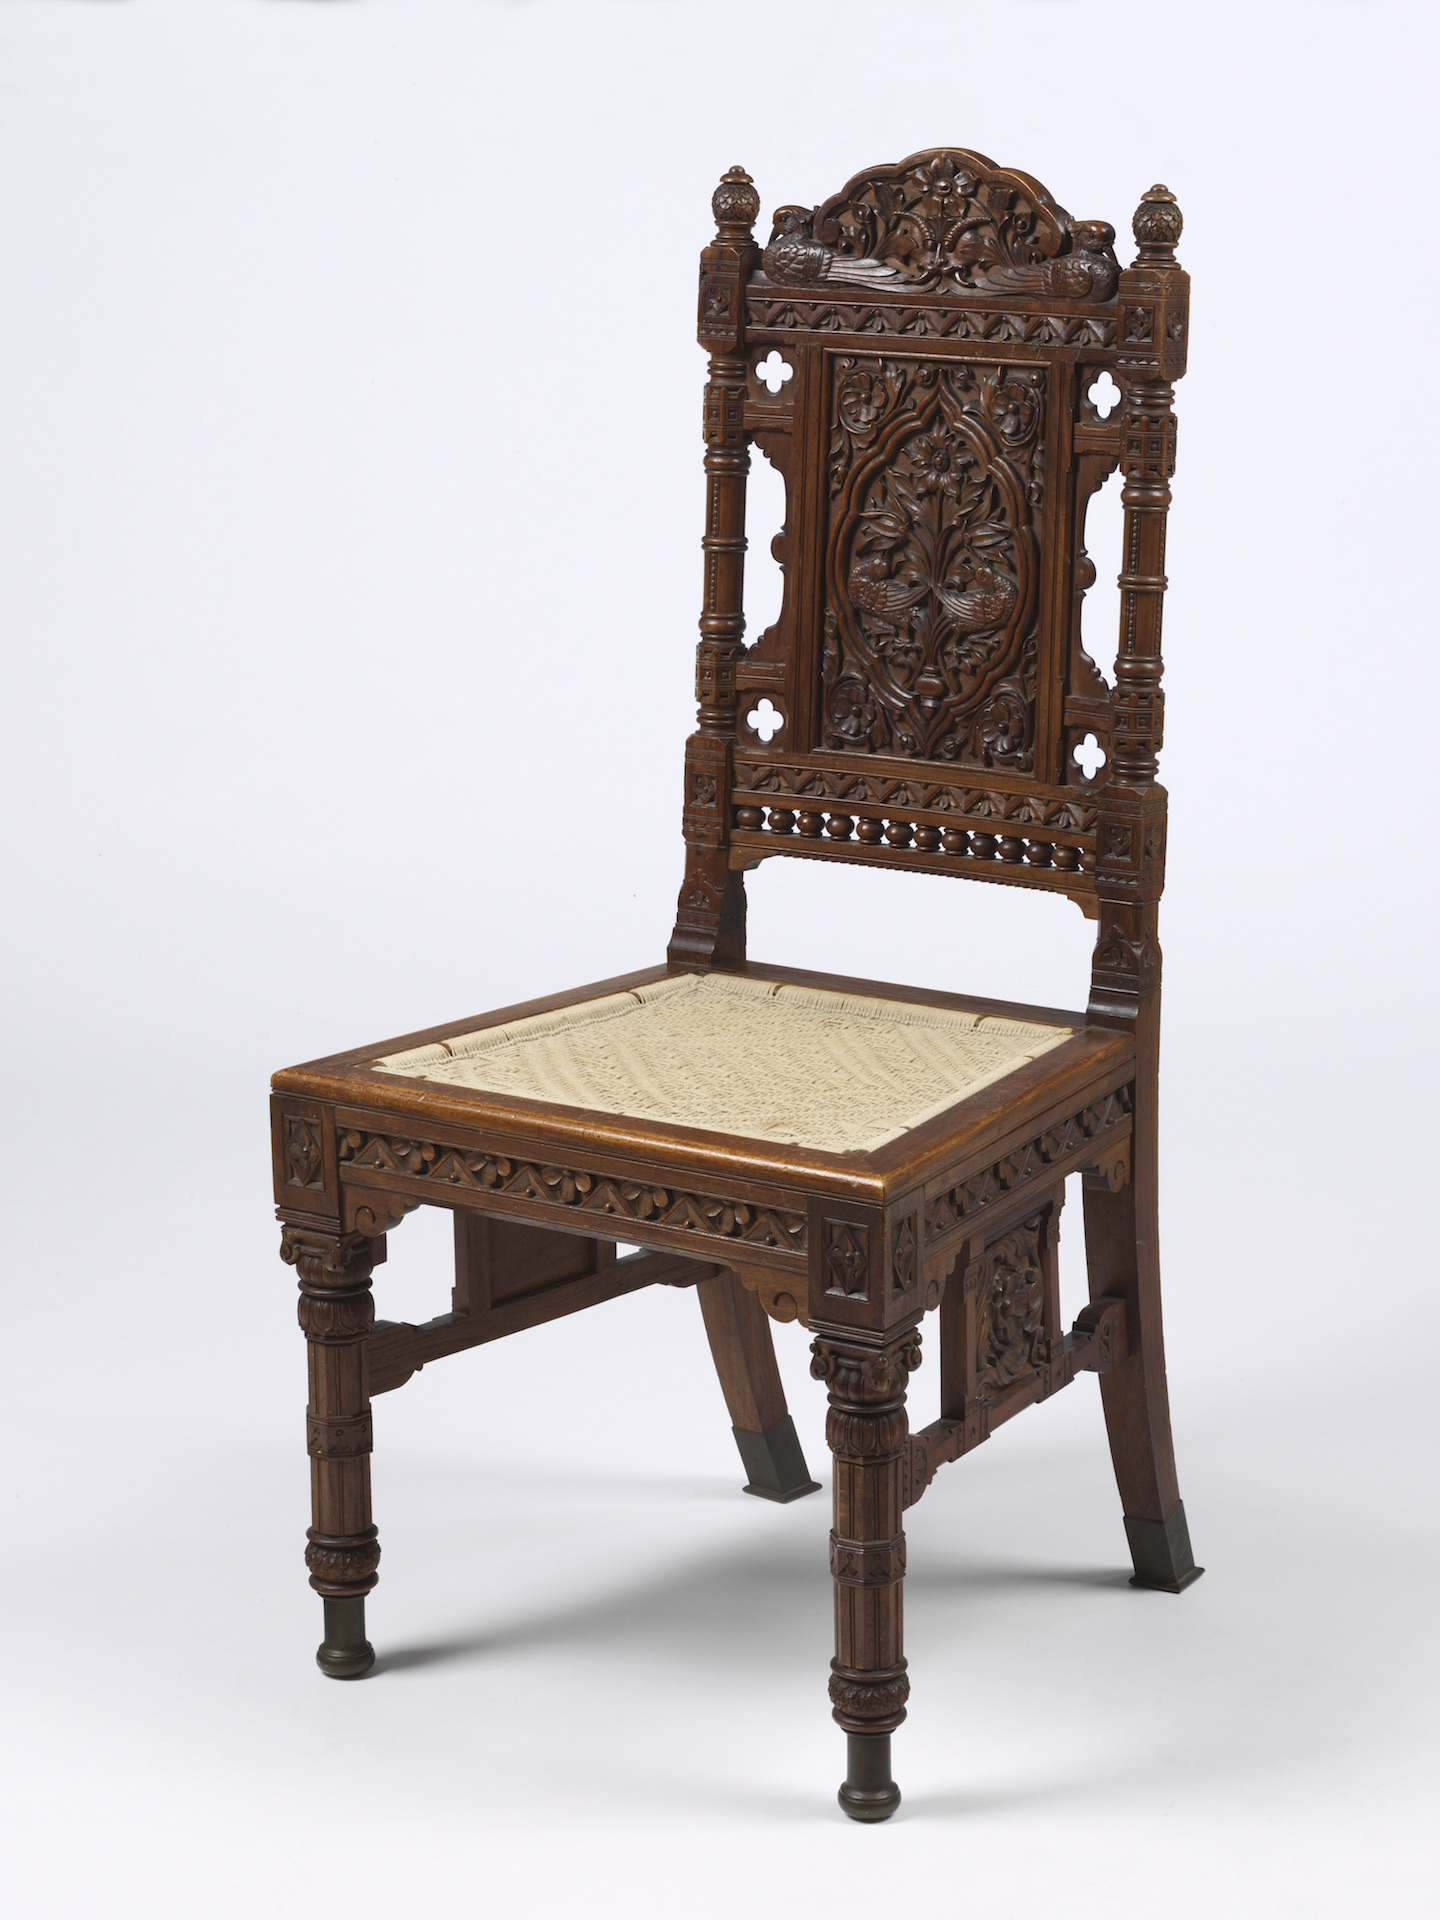 Ordinaire India And The Arts And Crafts Movement At The Bard Graduate Center